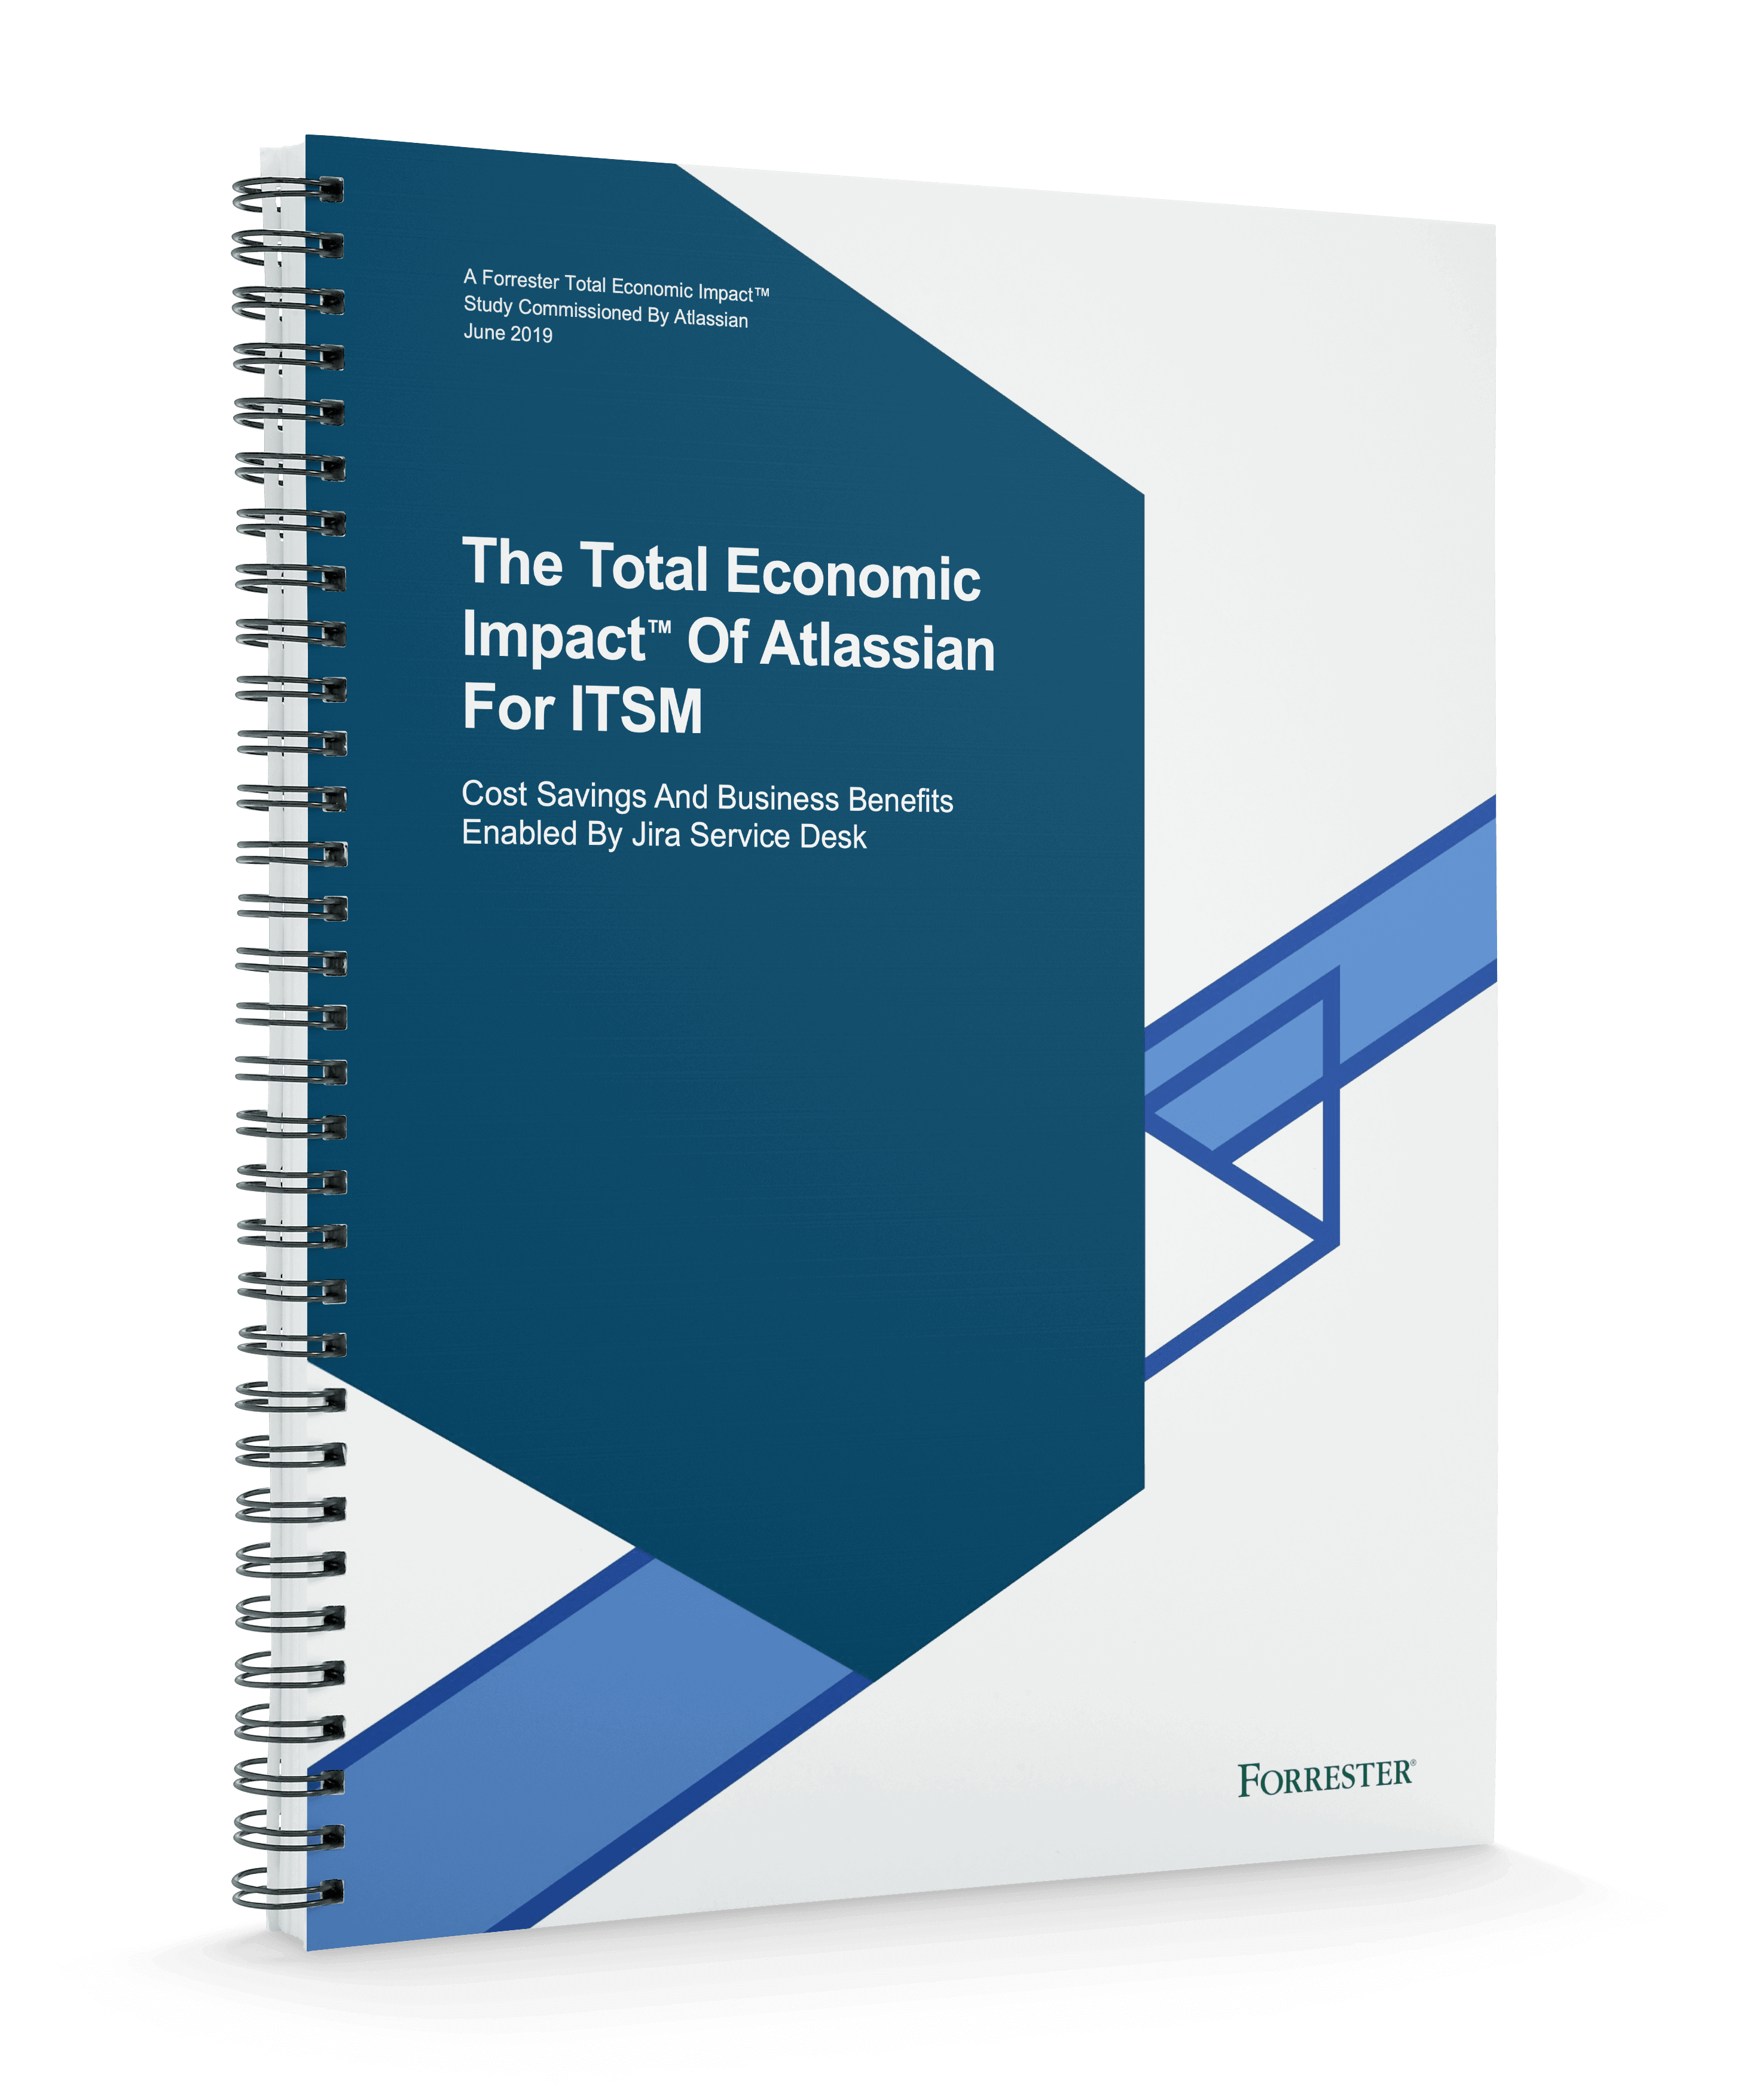 """The Total Economic Impact™ Of Atlassian For ITSM"" di Forrester"